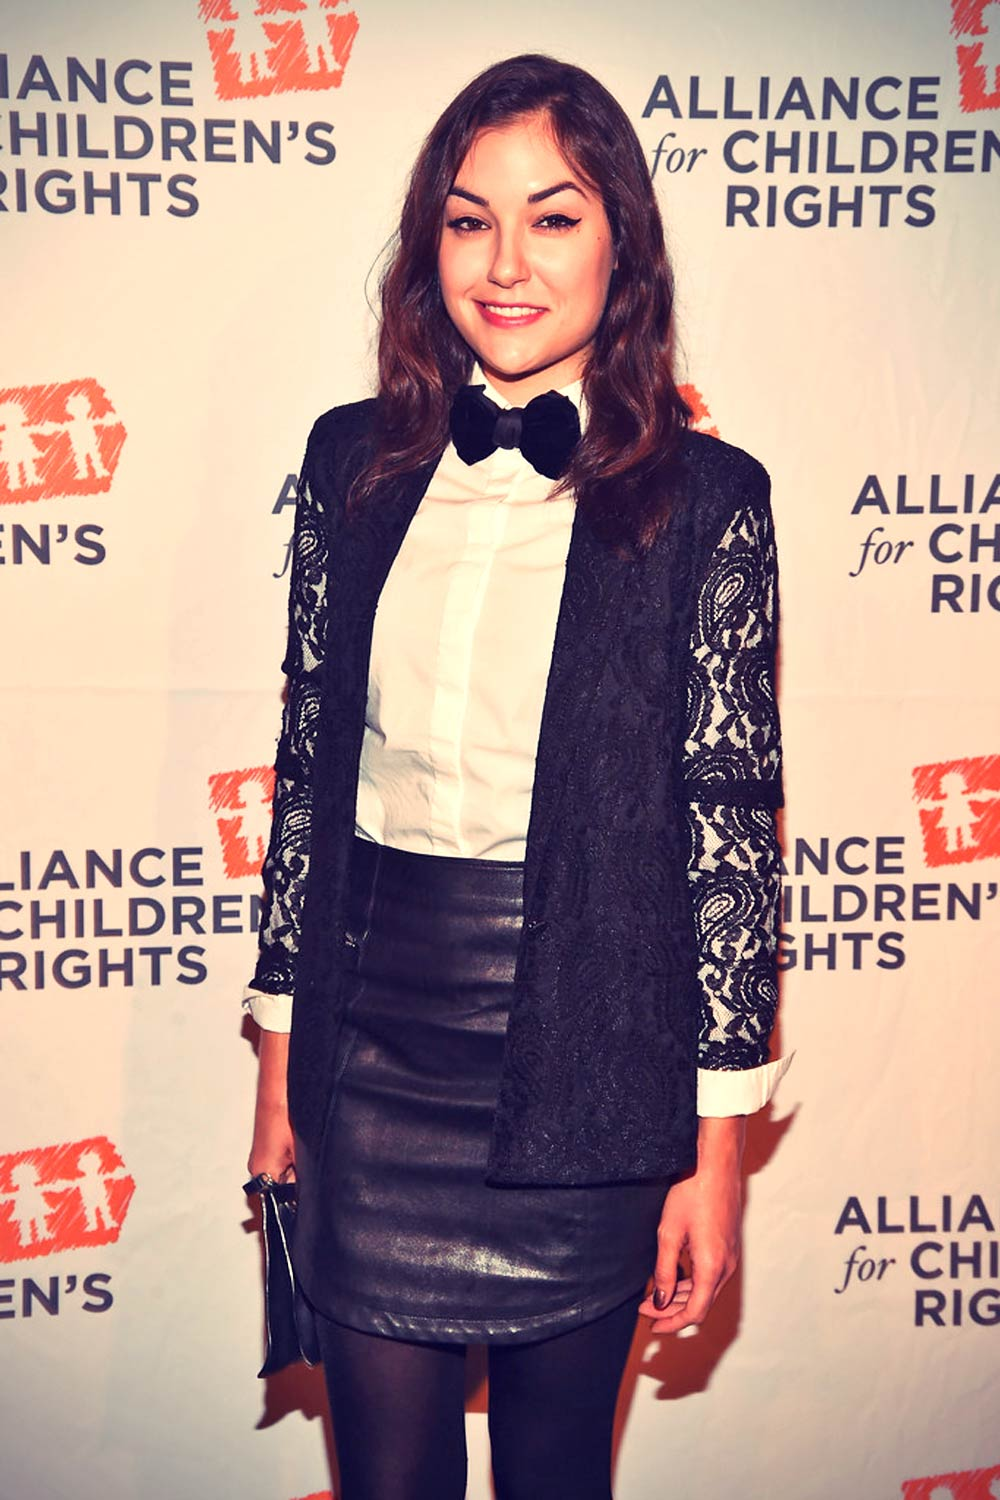 Sasha Grey attends The Alliance For Children's Rights To Laugh